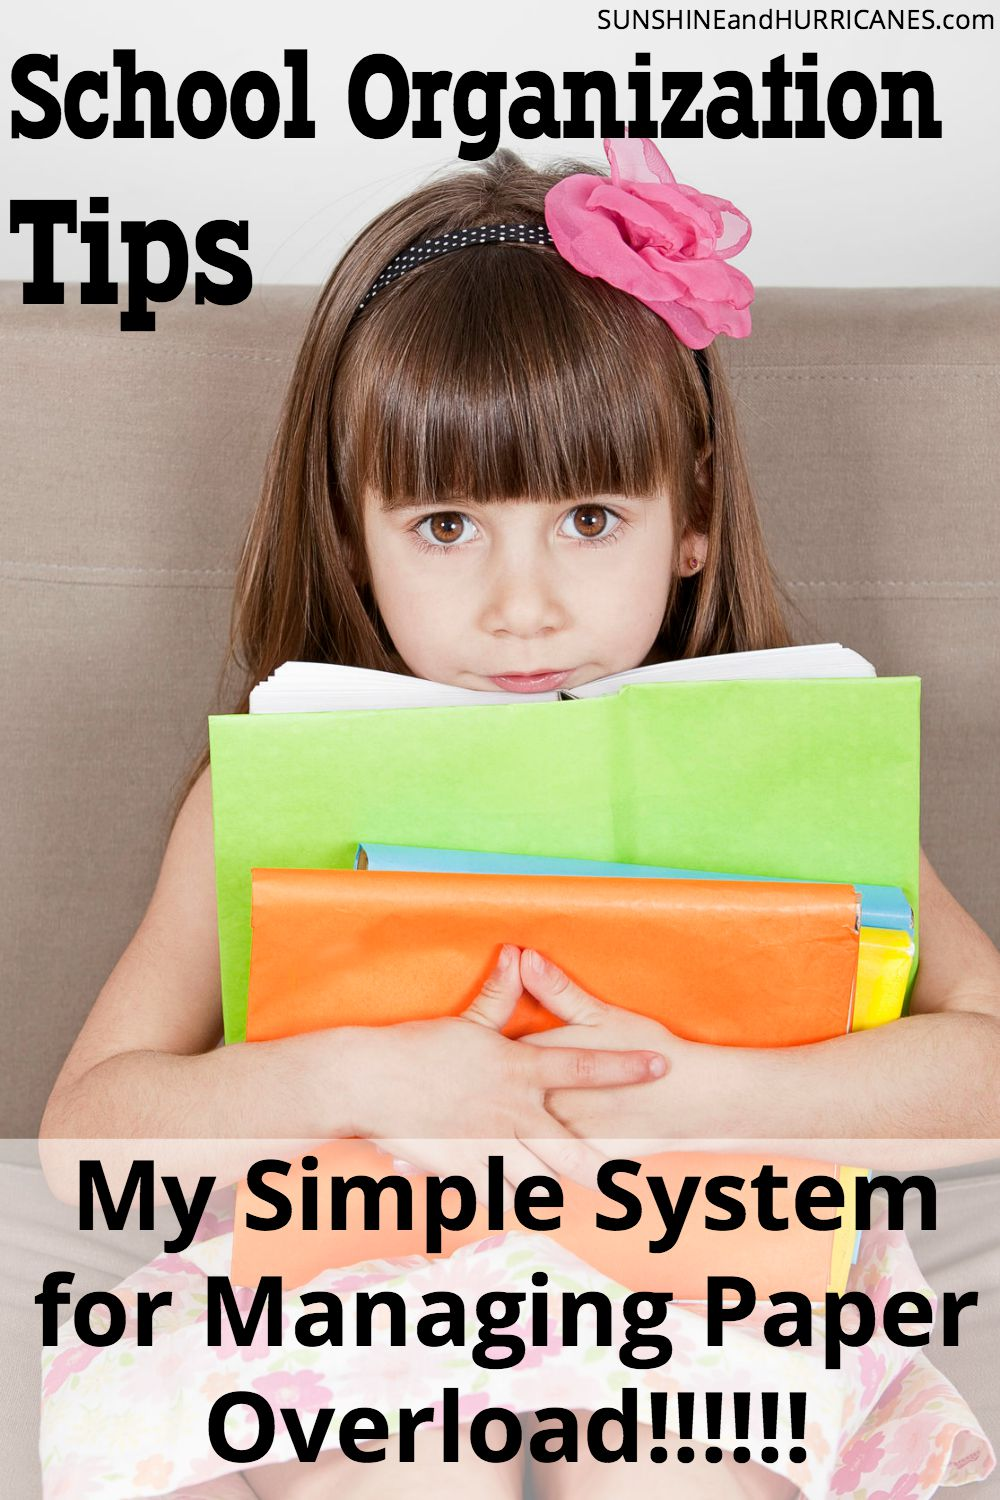 Are you completely overwhelmed by all the paperwork that comes home from school with your kids every day?! I was too! It stressed me out and I was so frustrated. Then I developed a simple system (yes, really simple) that helped me sort through it all in a quick and easy way and even organize and store the most important things. Here I'll share my School Organization Tips for Managing Paper Overload with you. SunshineandHurricanes.com